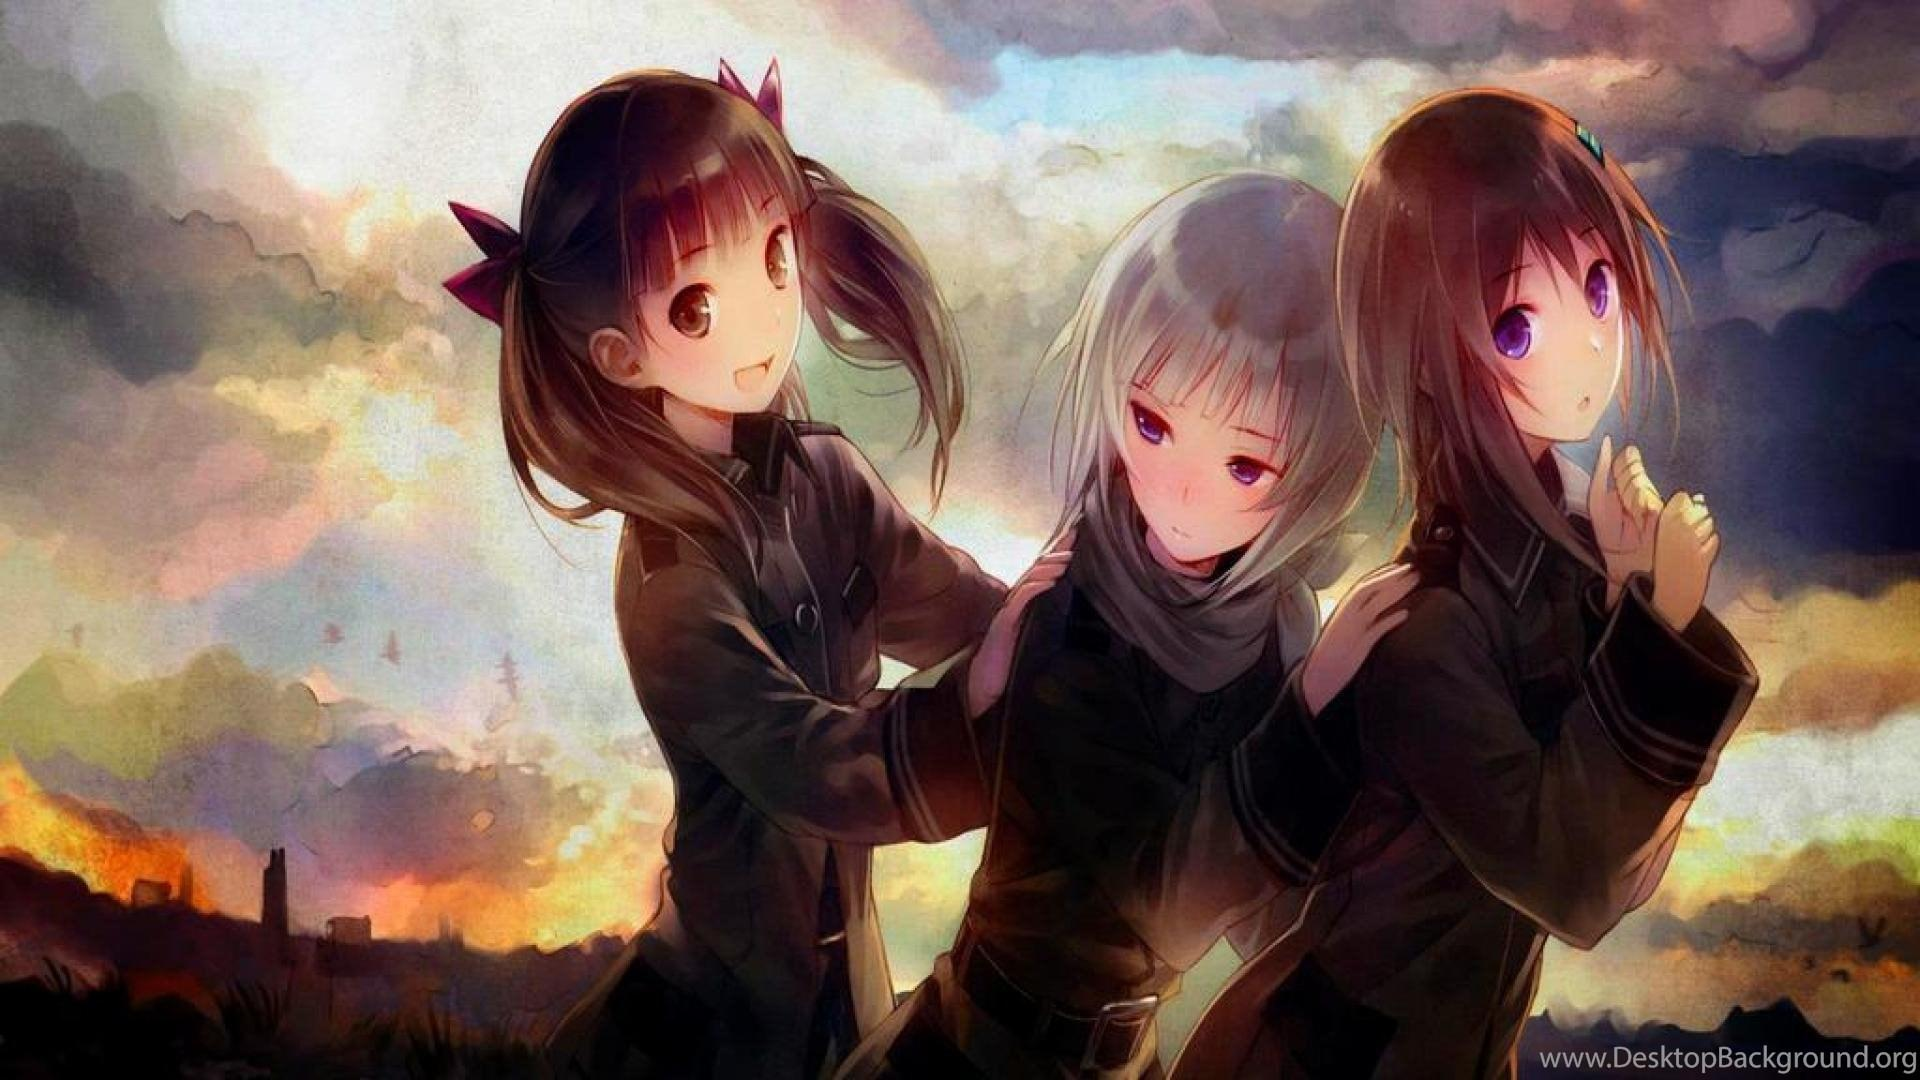 Friends Forever Anime Style Wallpapers Wallpaper Cave